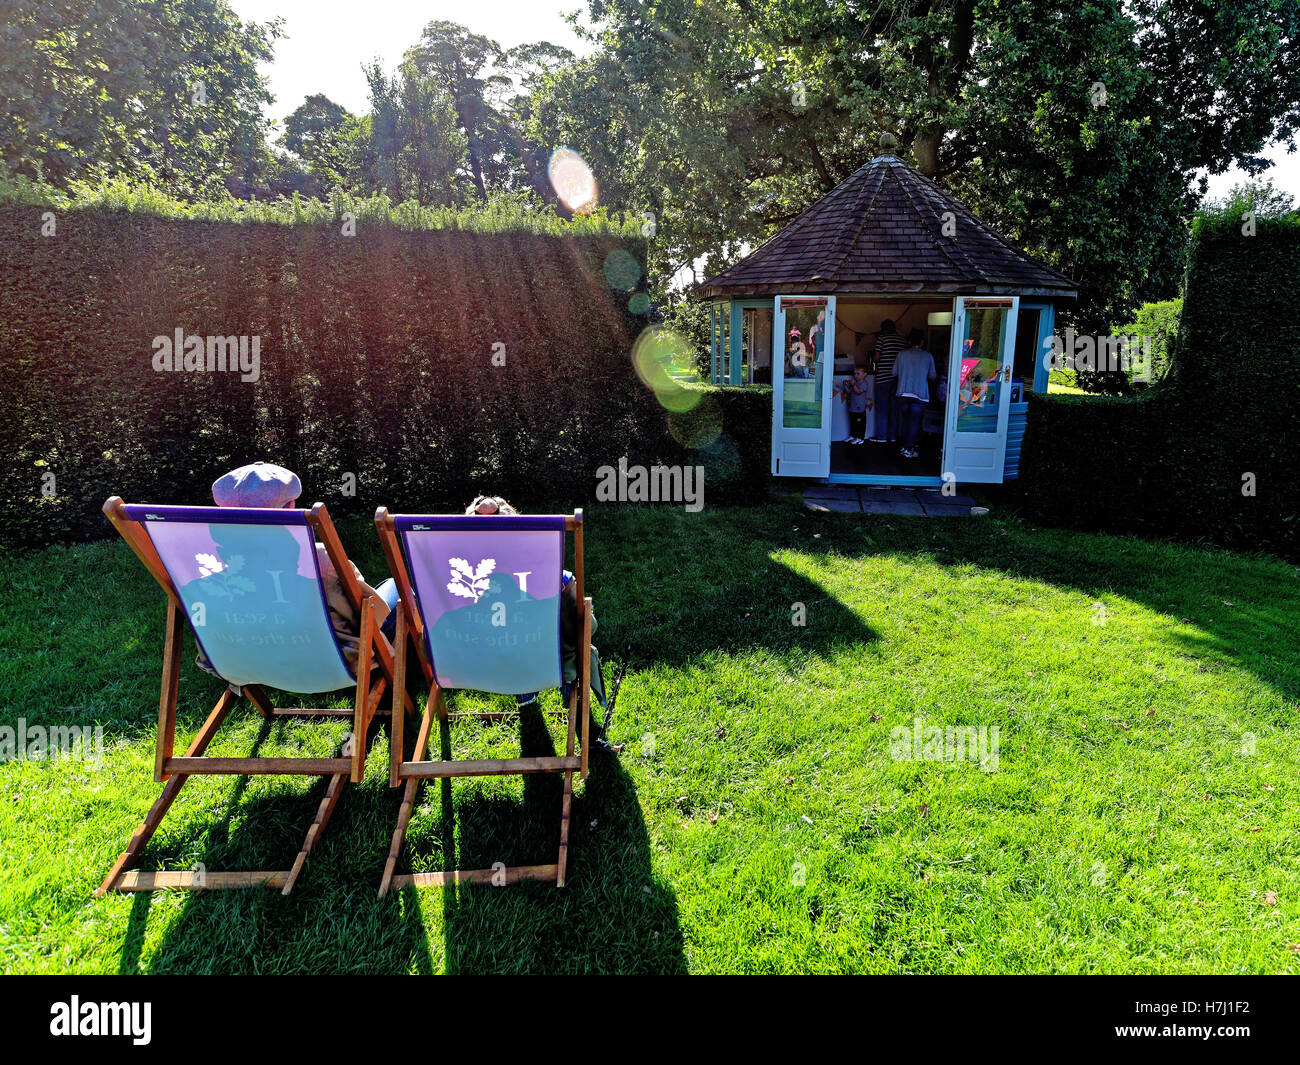 A seat in the evening sun - Stock Image